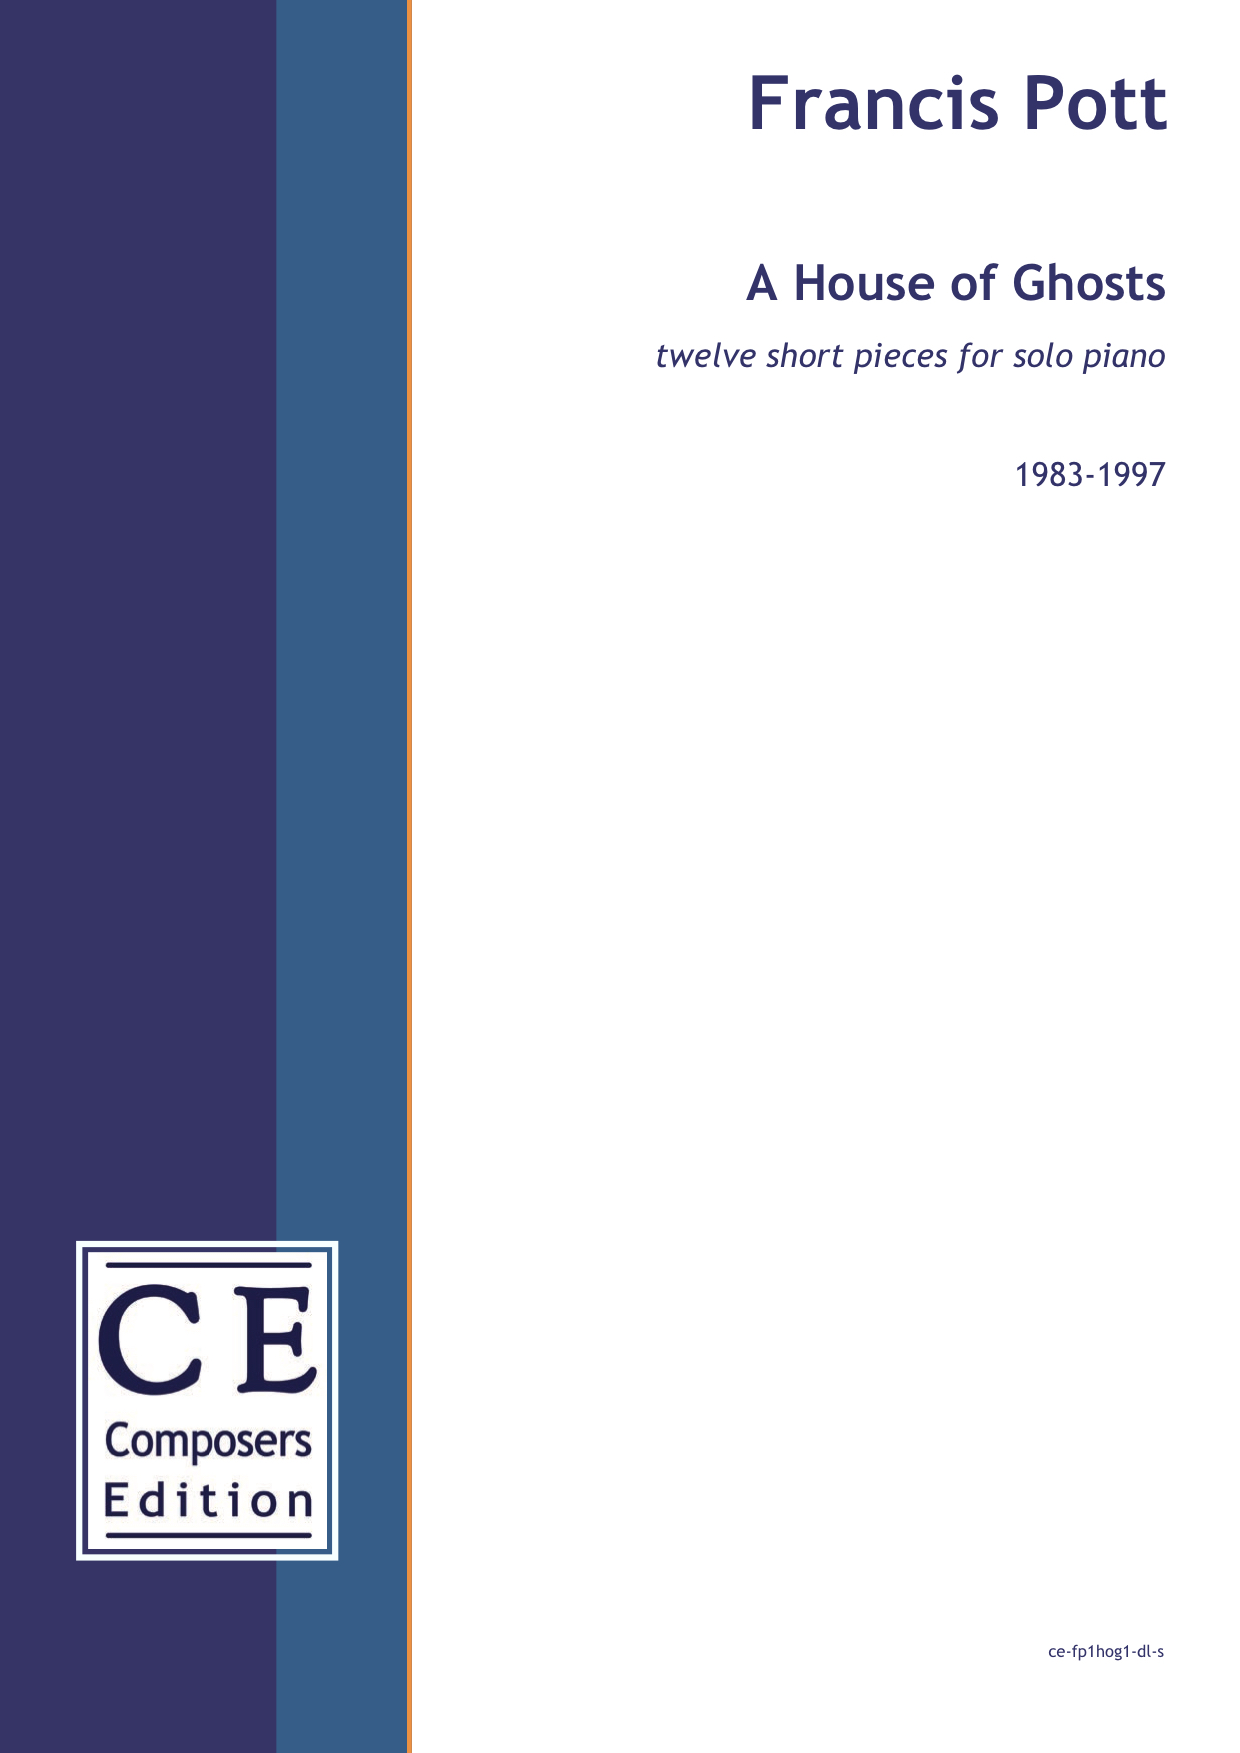 Francis Pott: A House of Ghosts twelve short pieces for solo piano